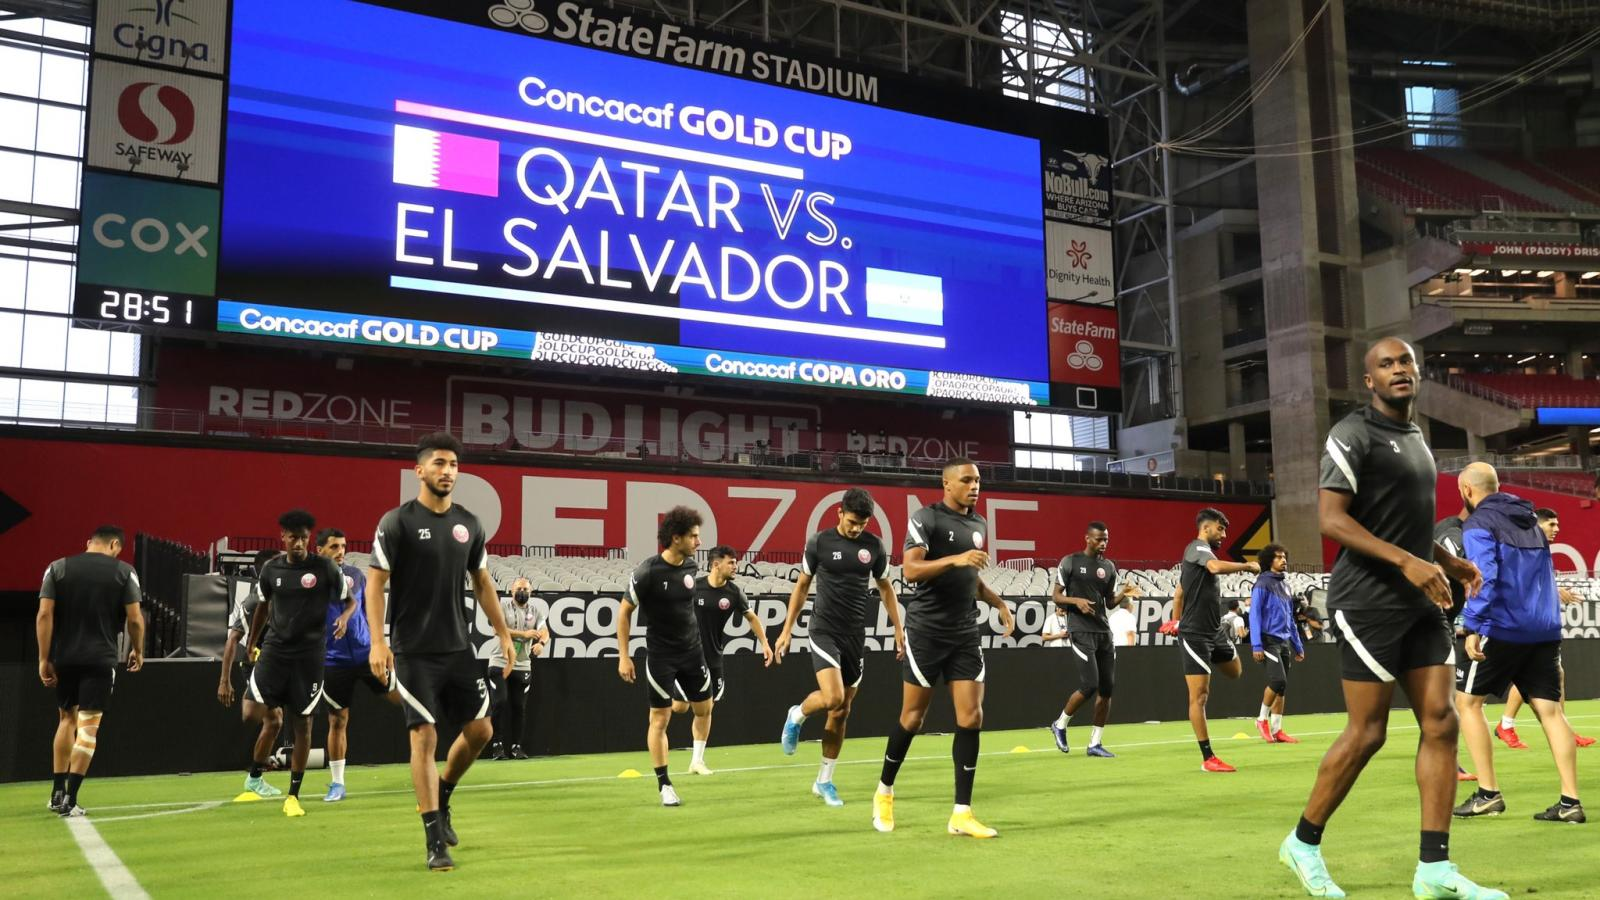 WATCH: Qatar ready for historical CONCACAF Gold Cup quarter-finals clash with El Salvador